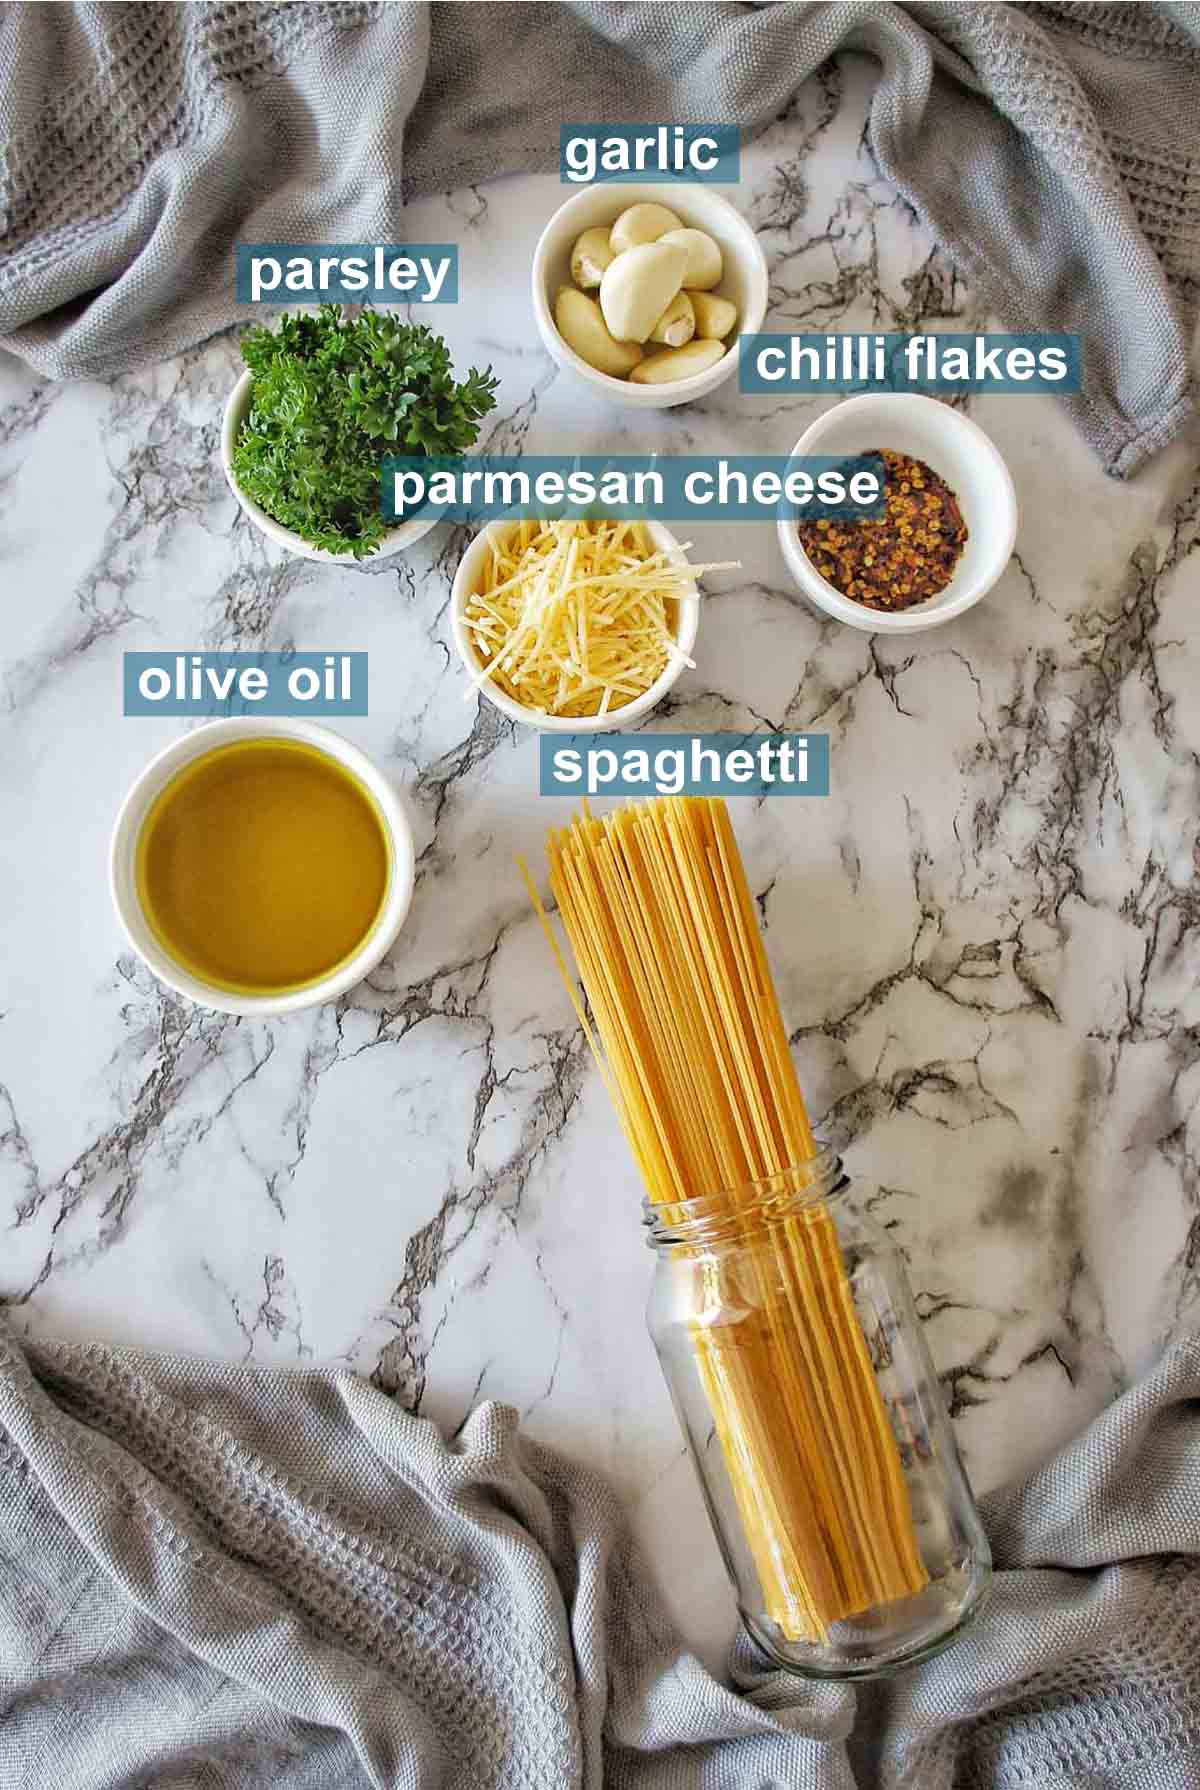 Garlic Spaghetti ingredients with text labels